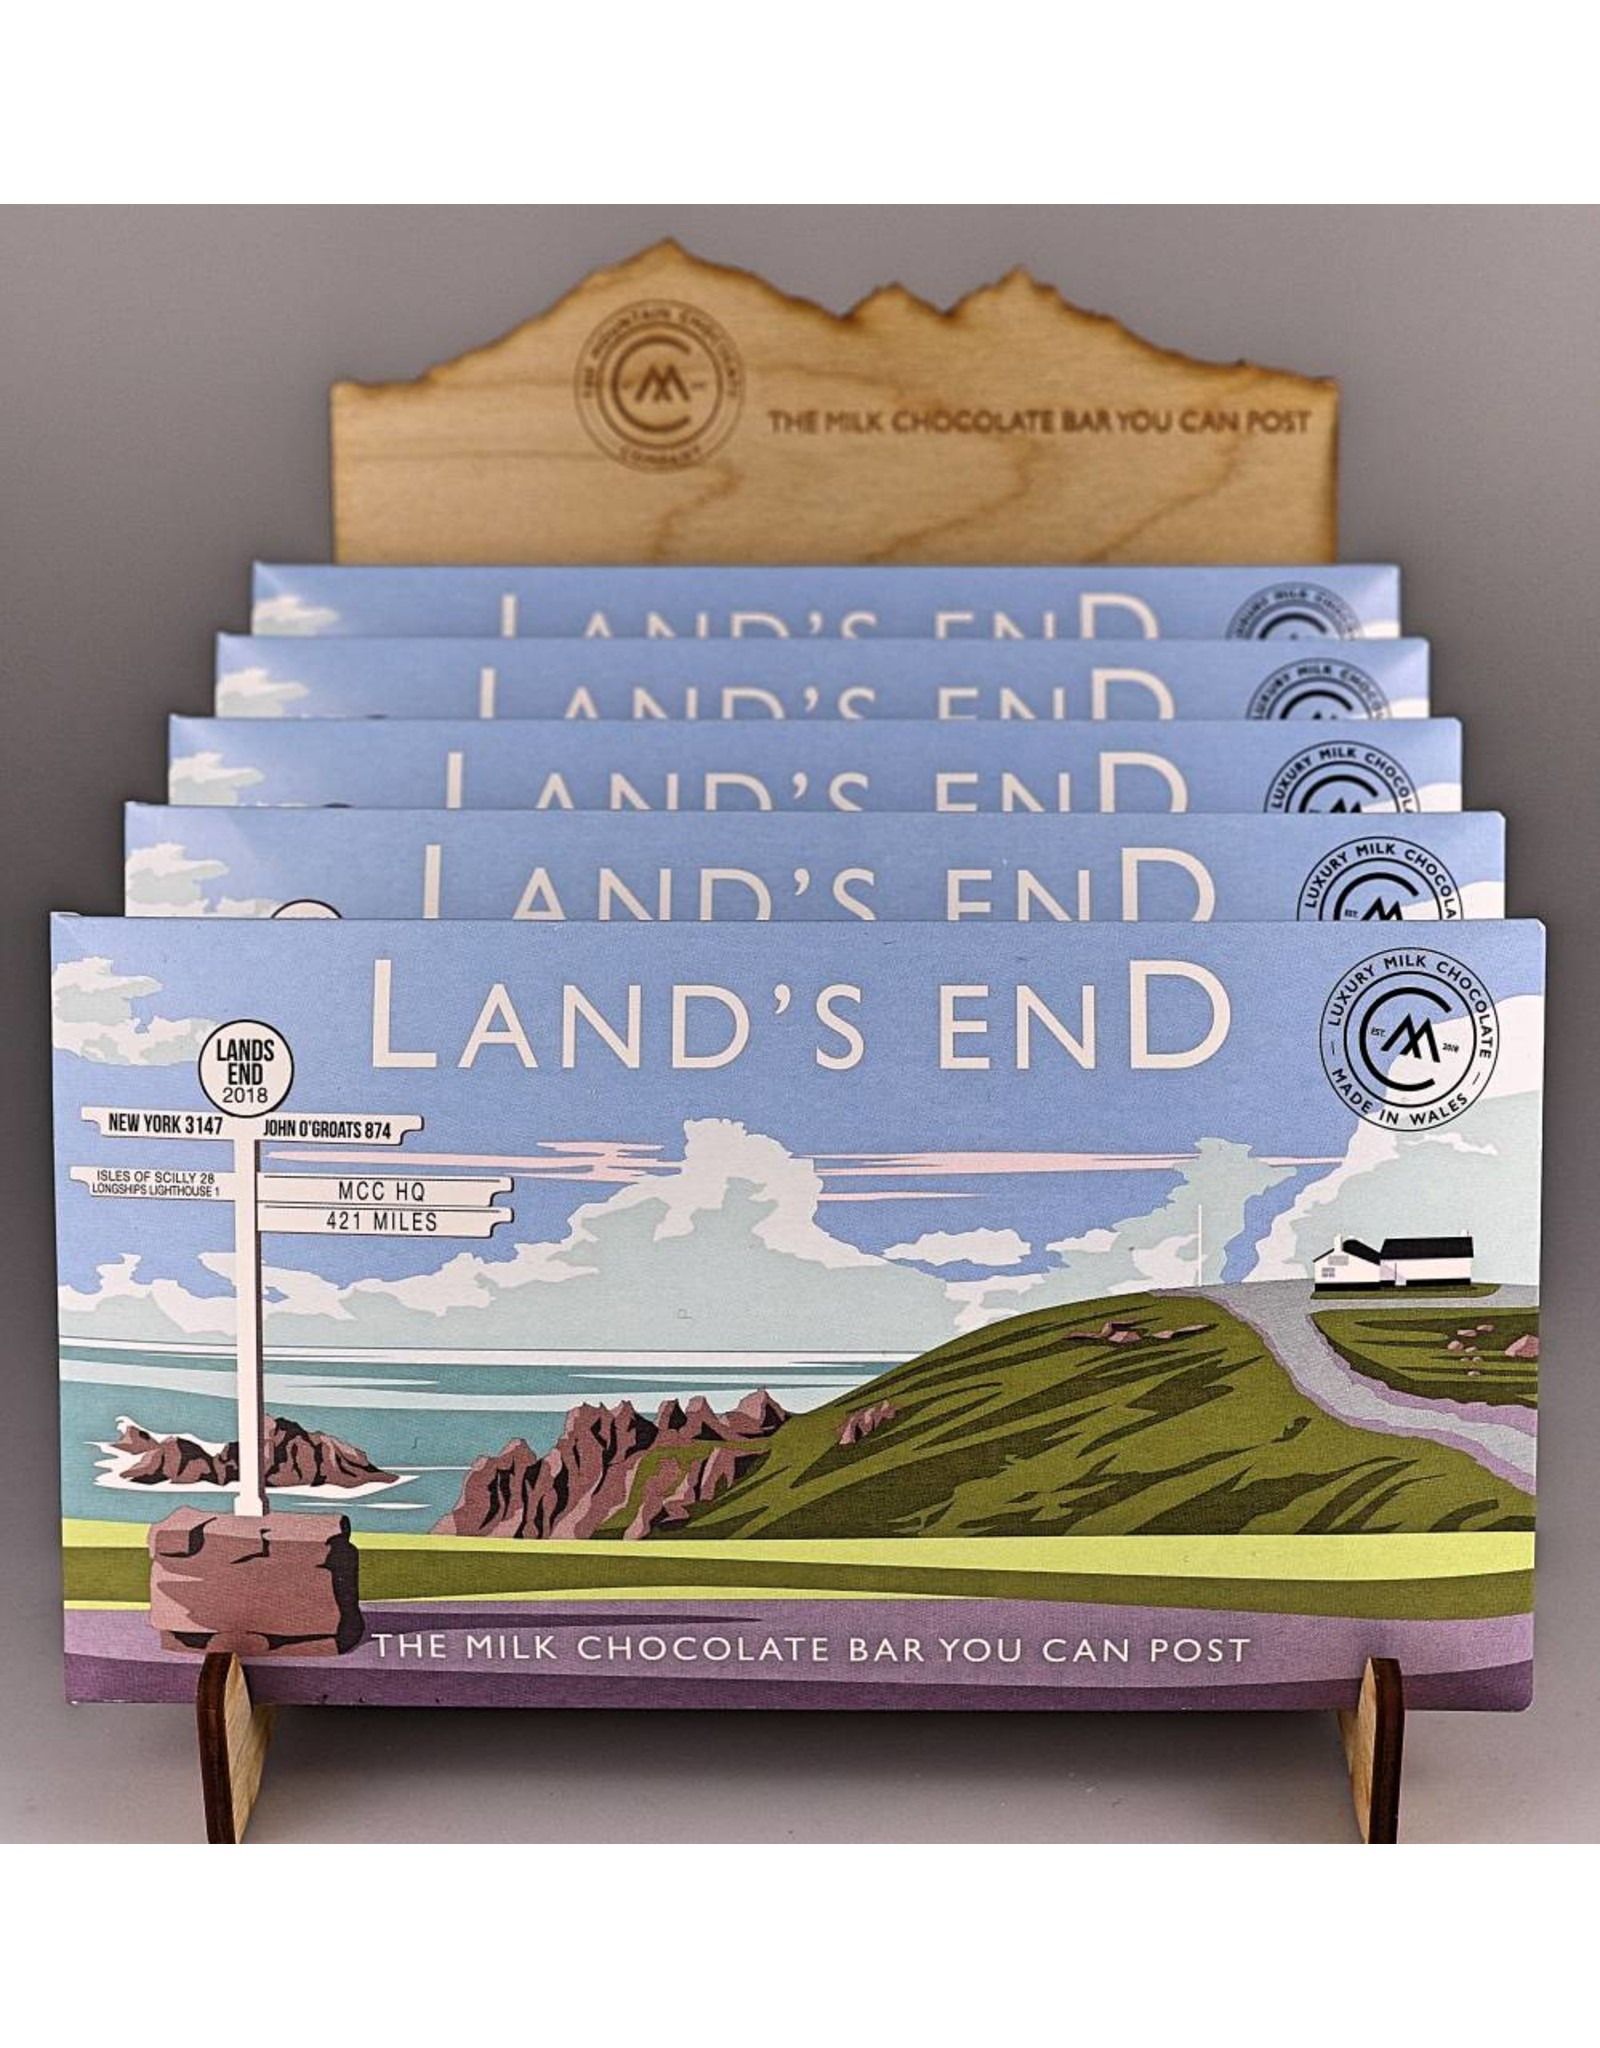 The Chocolate Bar You Can Post - Lands End - Trade Box of 20